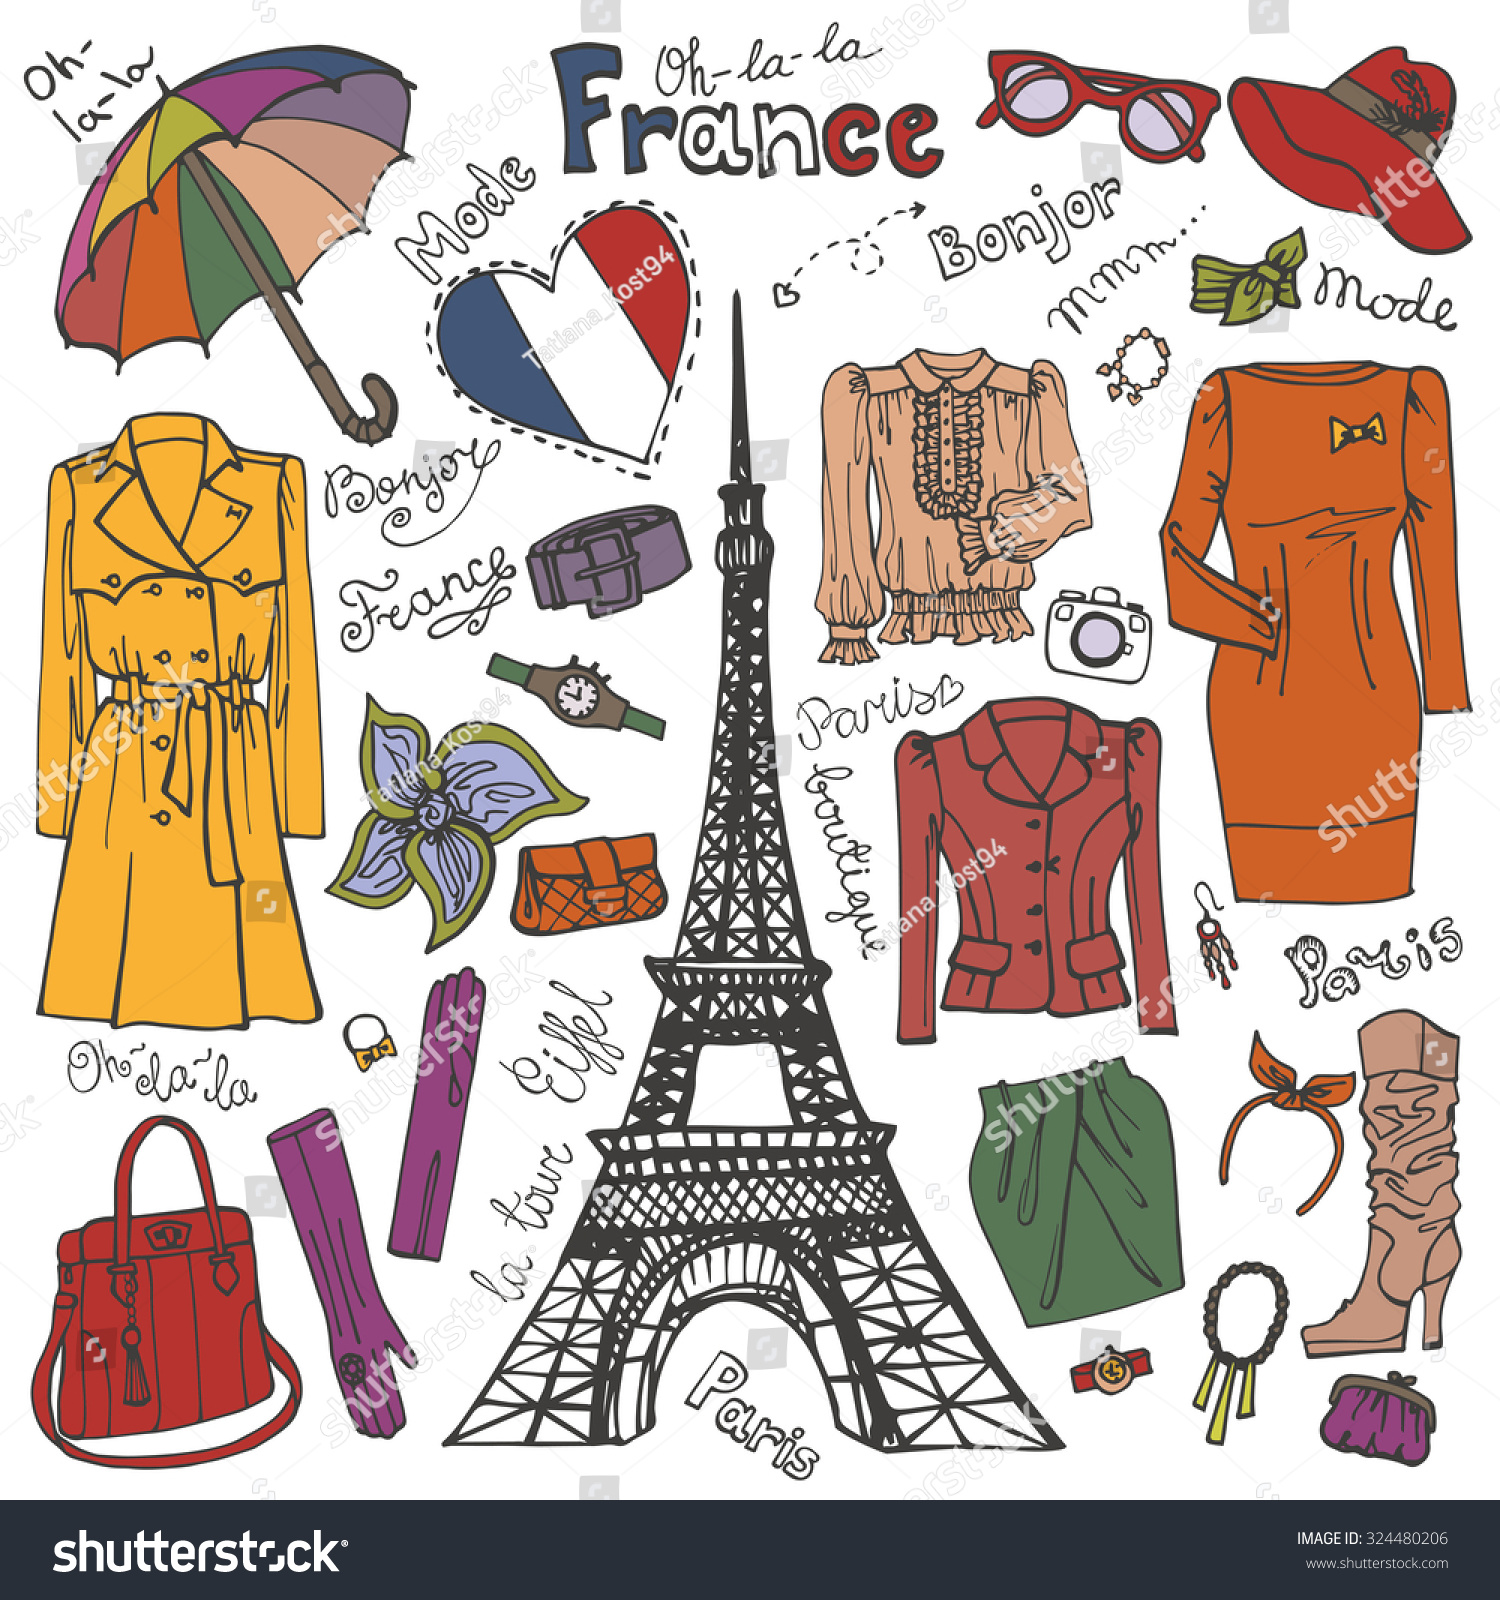 Paris Fashionclothing Accessories Eiffel Towerhand Drawing